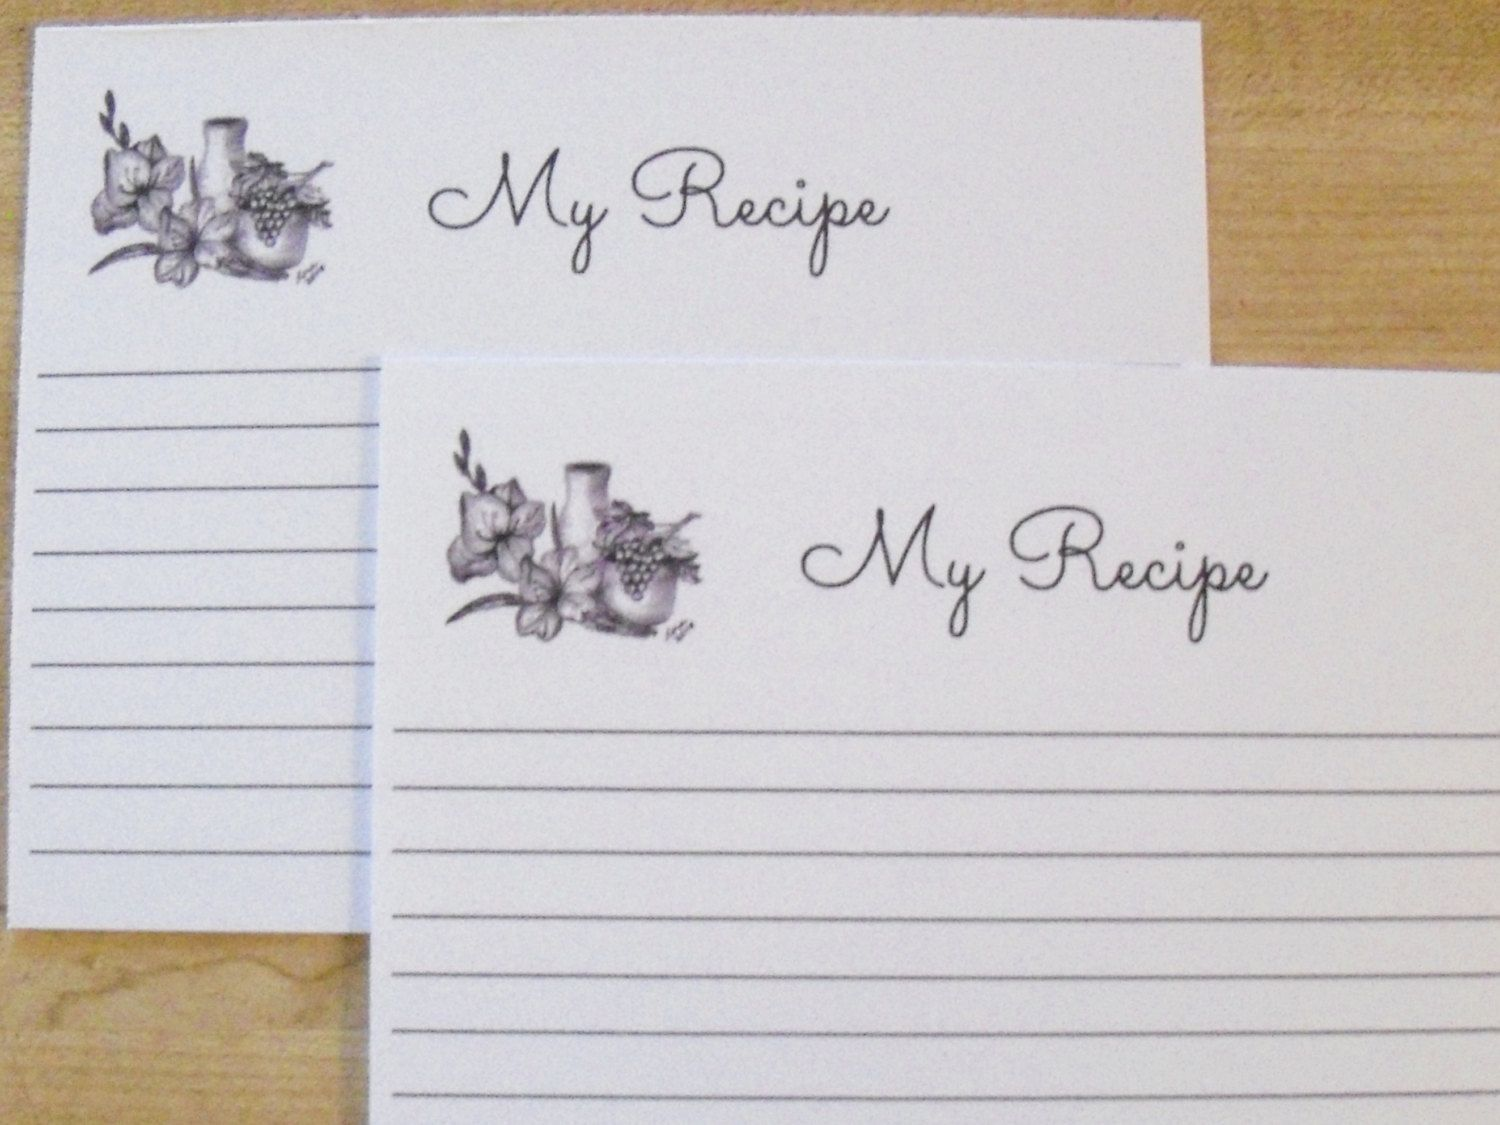 Recipe cards baking recipe cards cooking recipe cards baking recipe cards baking recipe cards cooking recipe cards baking cards index recipe cards flower recipe cards art 16 pc forumfinder Choice Image